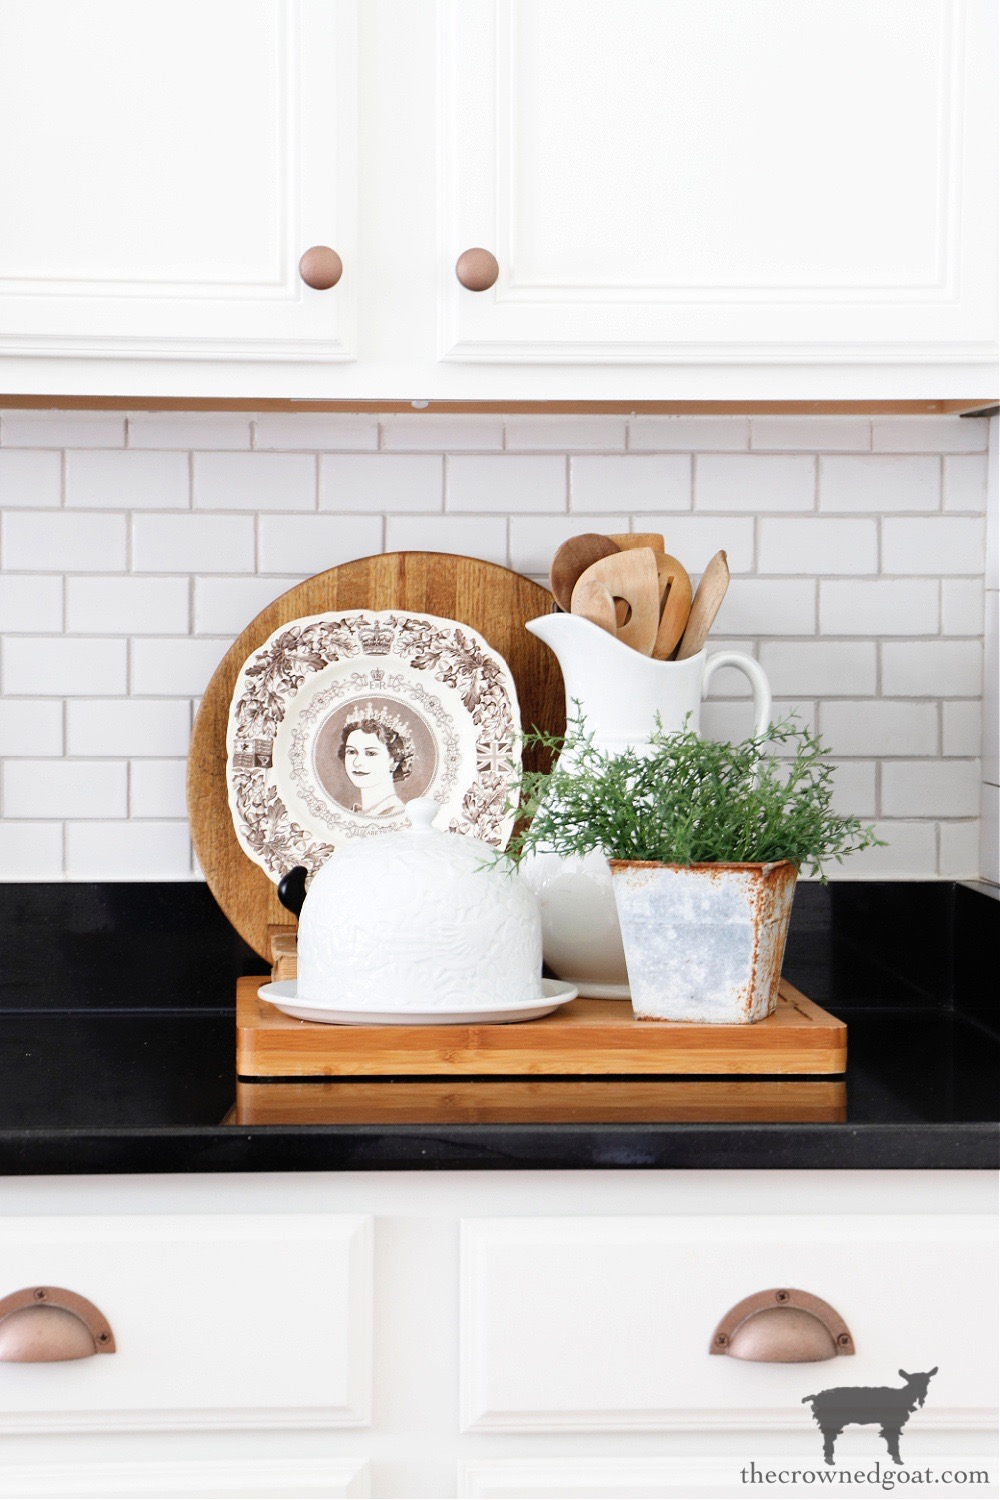 How to Easily Change the Color of Existing Grout-Cottage Kitchen Vignette-The Crowned Goat